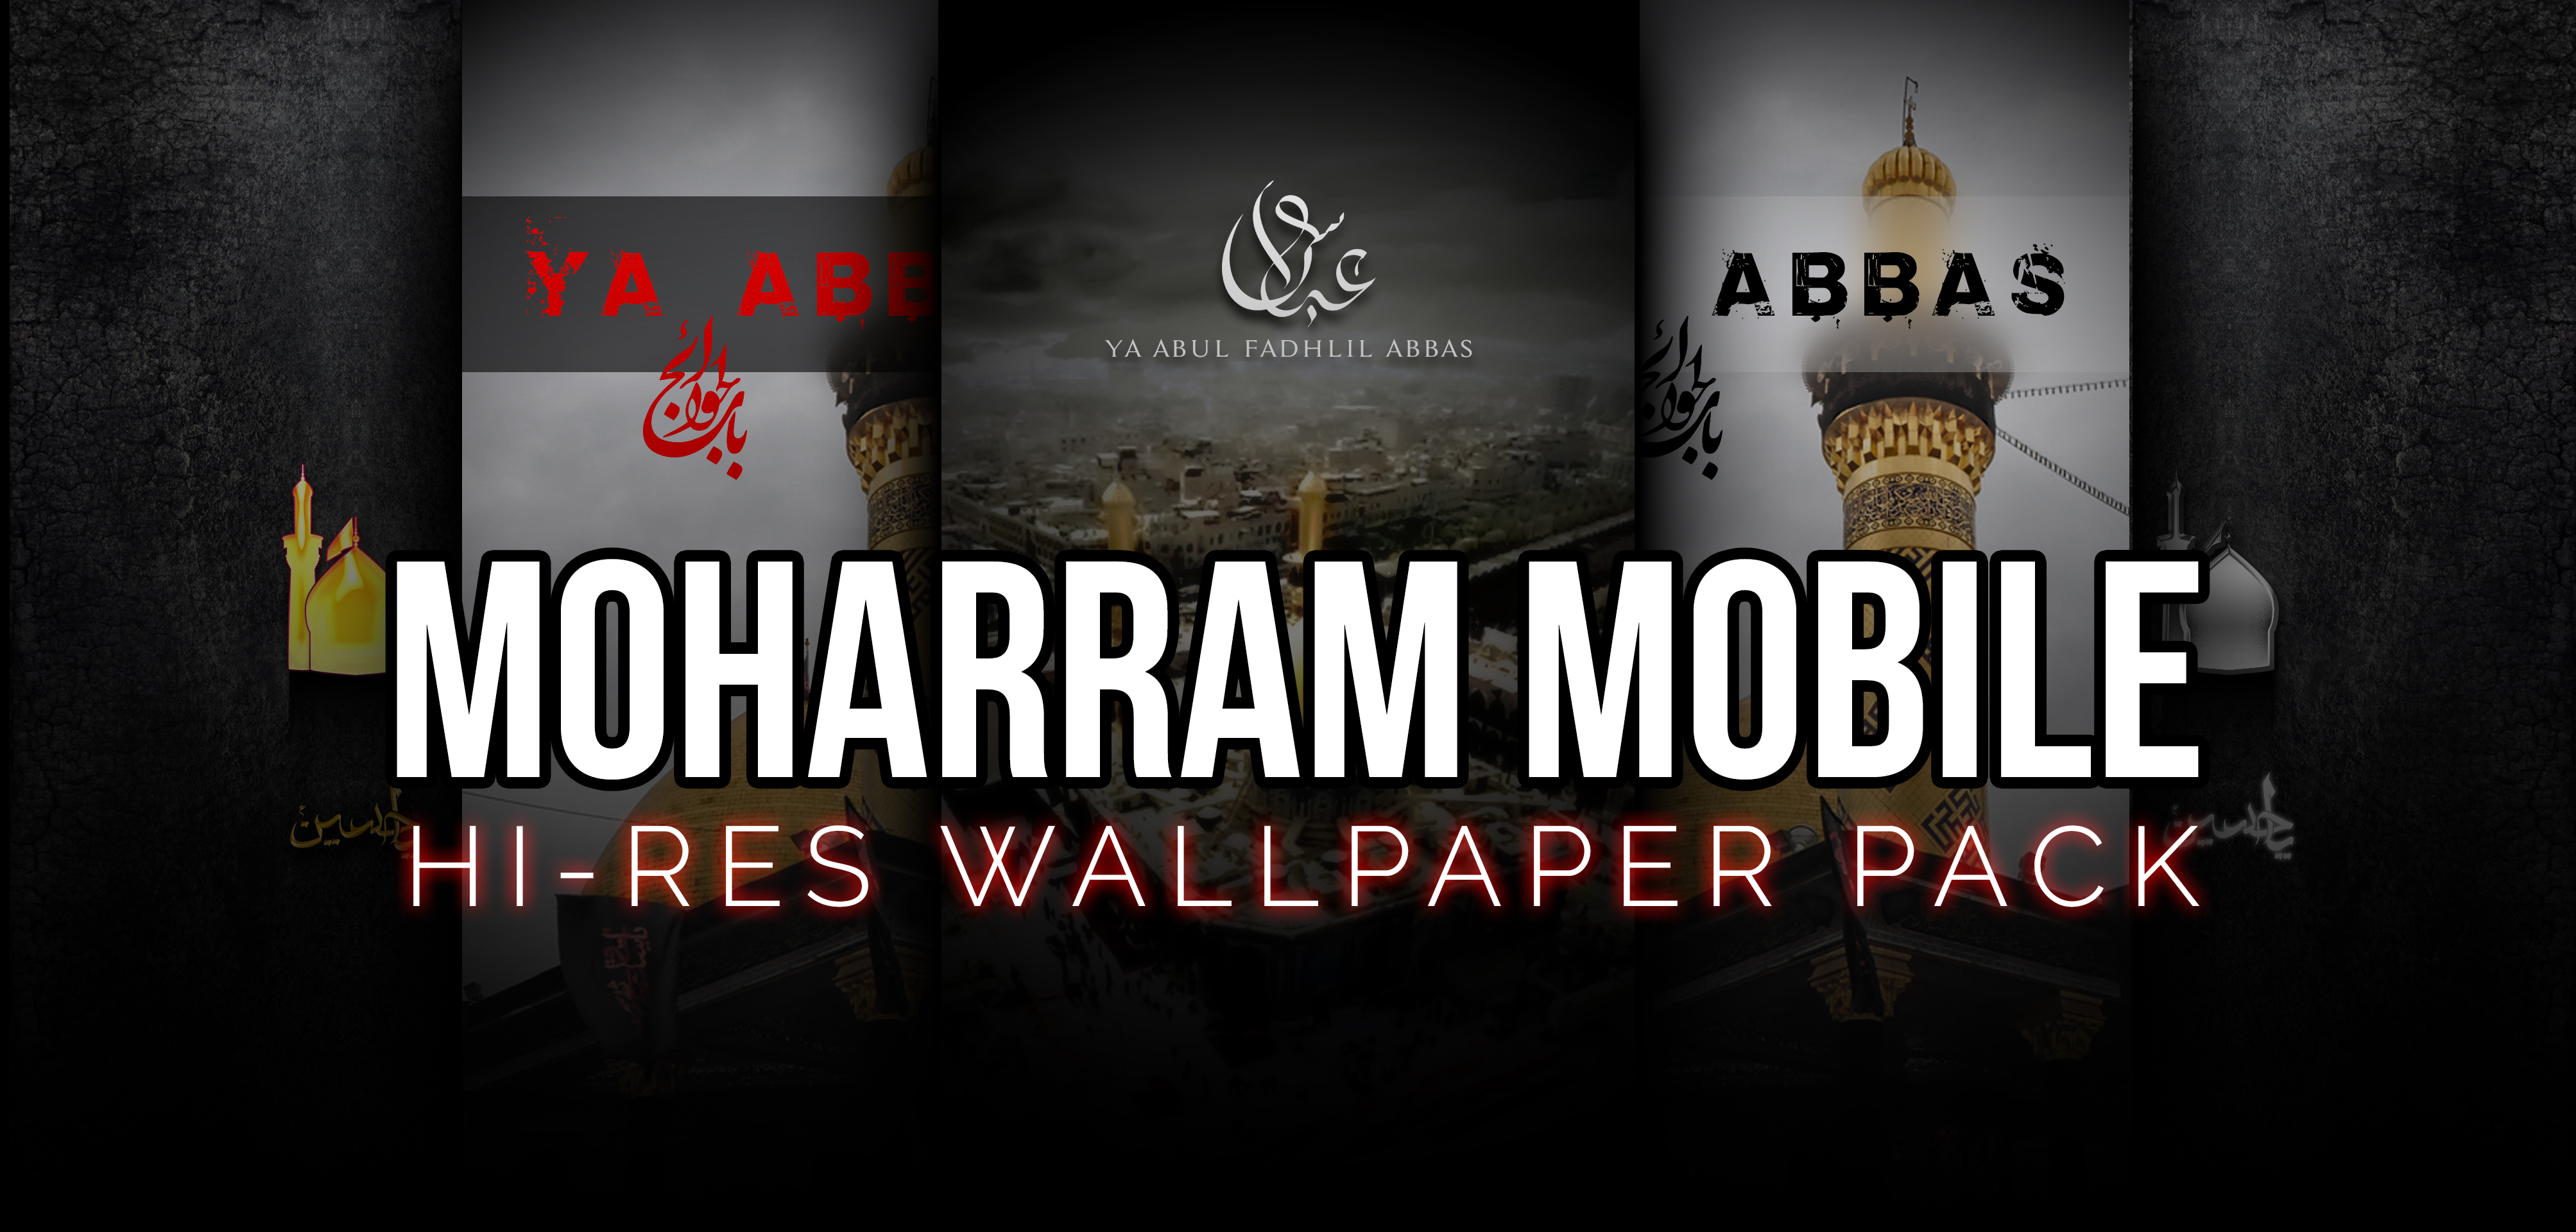 Non Muslim Perspective On The Revolution Of Imam Hussain: 2016 Moharram Wallpapers For Mobile Devices By DEA-pride